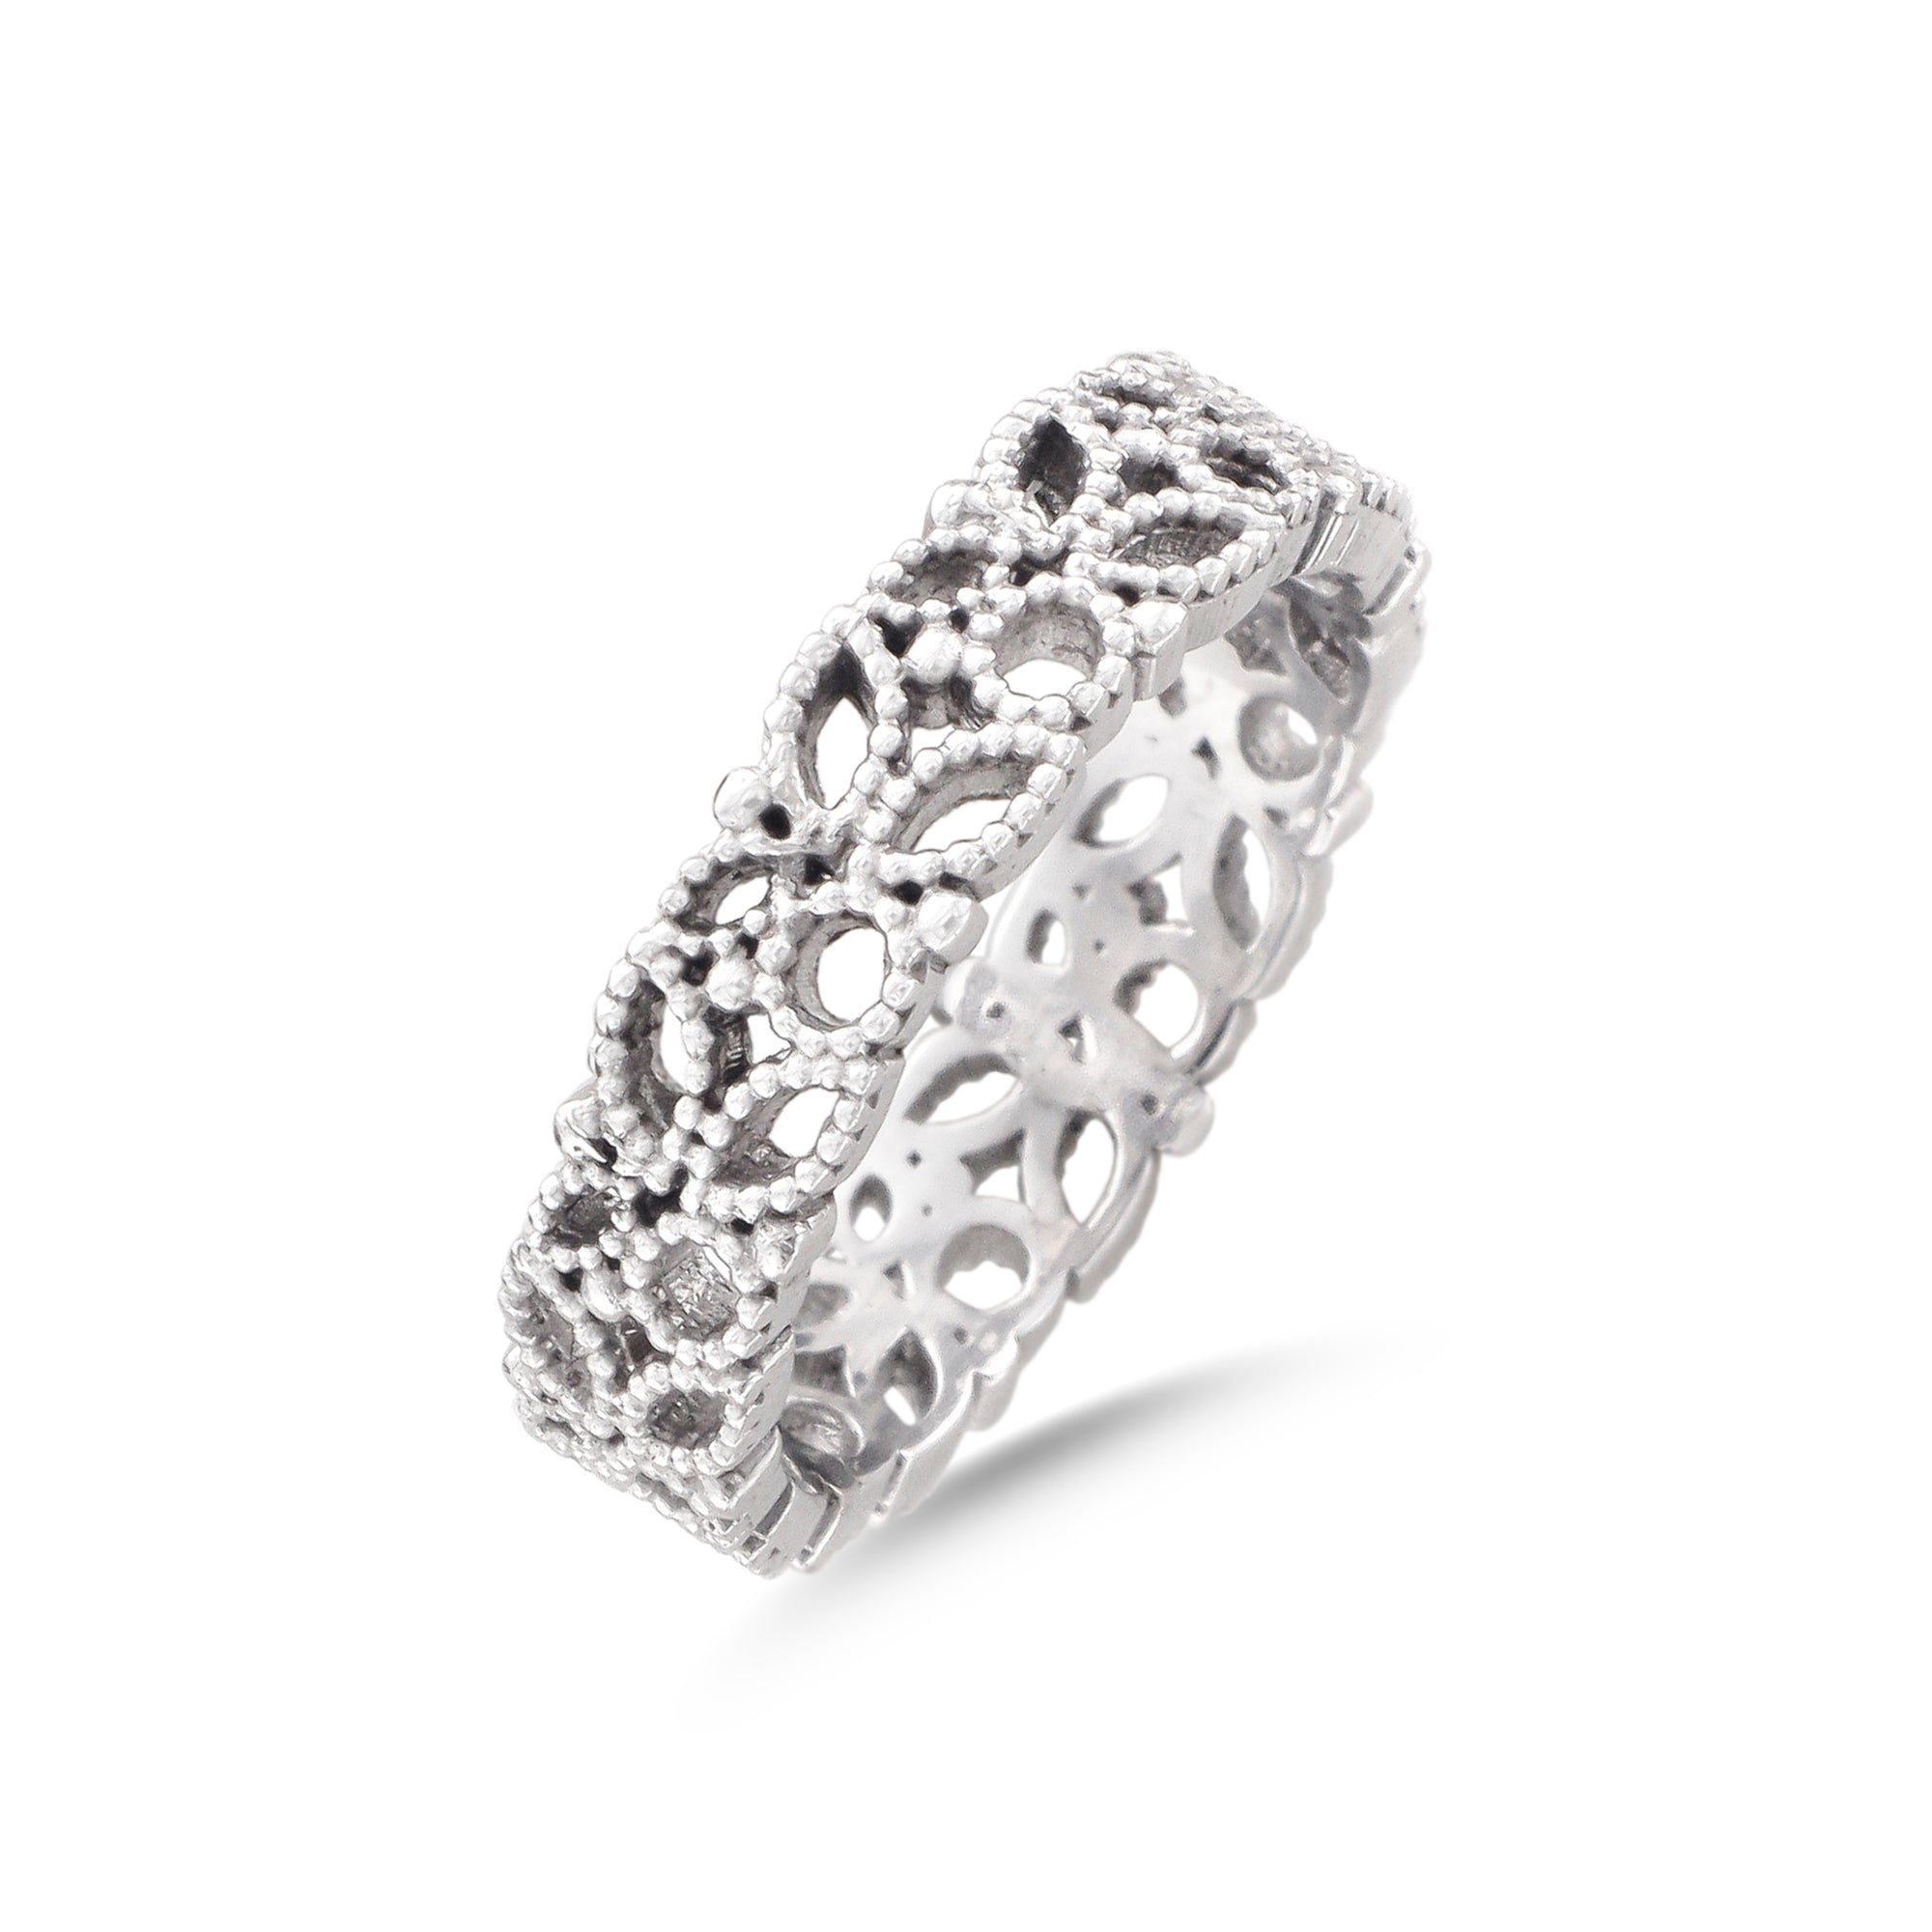 18ct White Gold Filigree Lace Ring